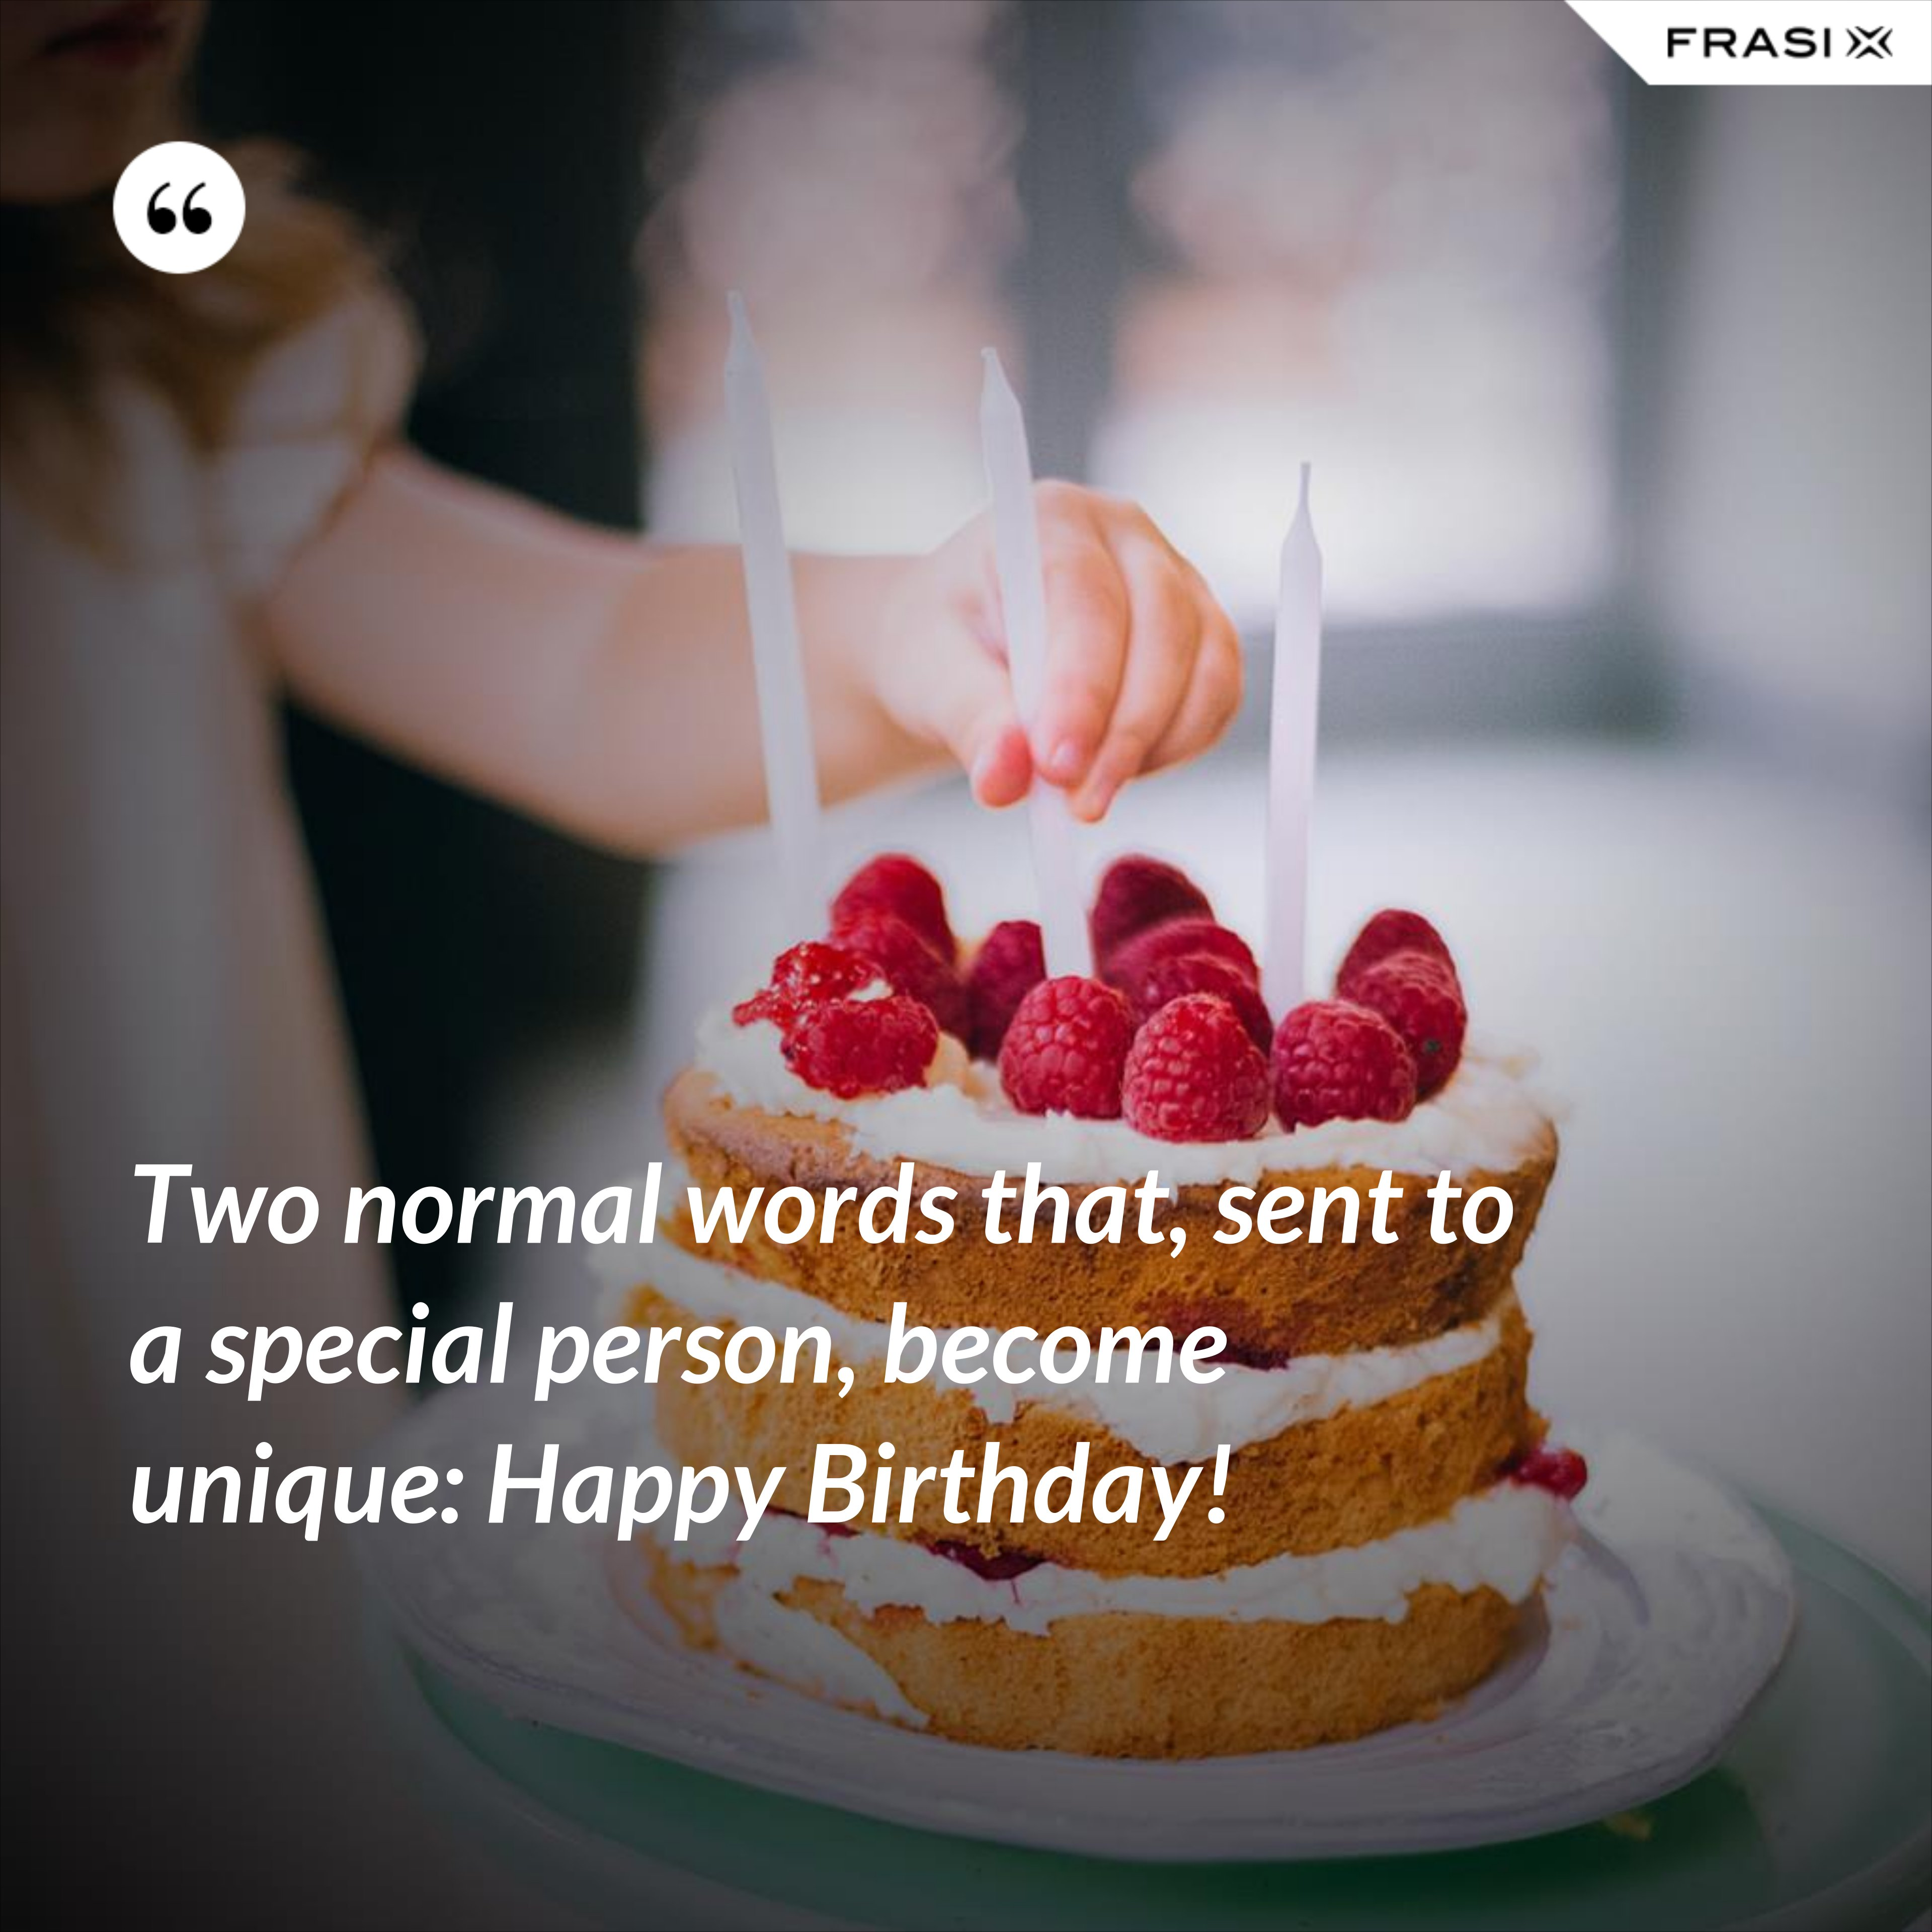 Two normal words that, sent to a special person, become unique: Happy Birthday! - Anonimo